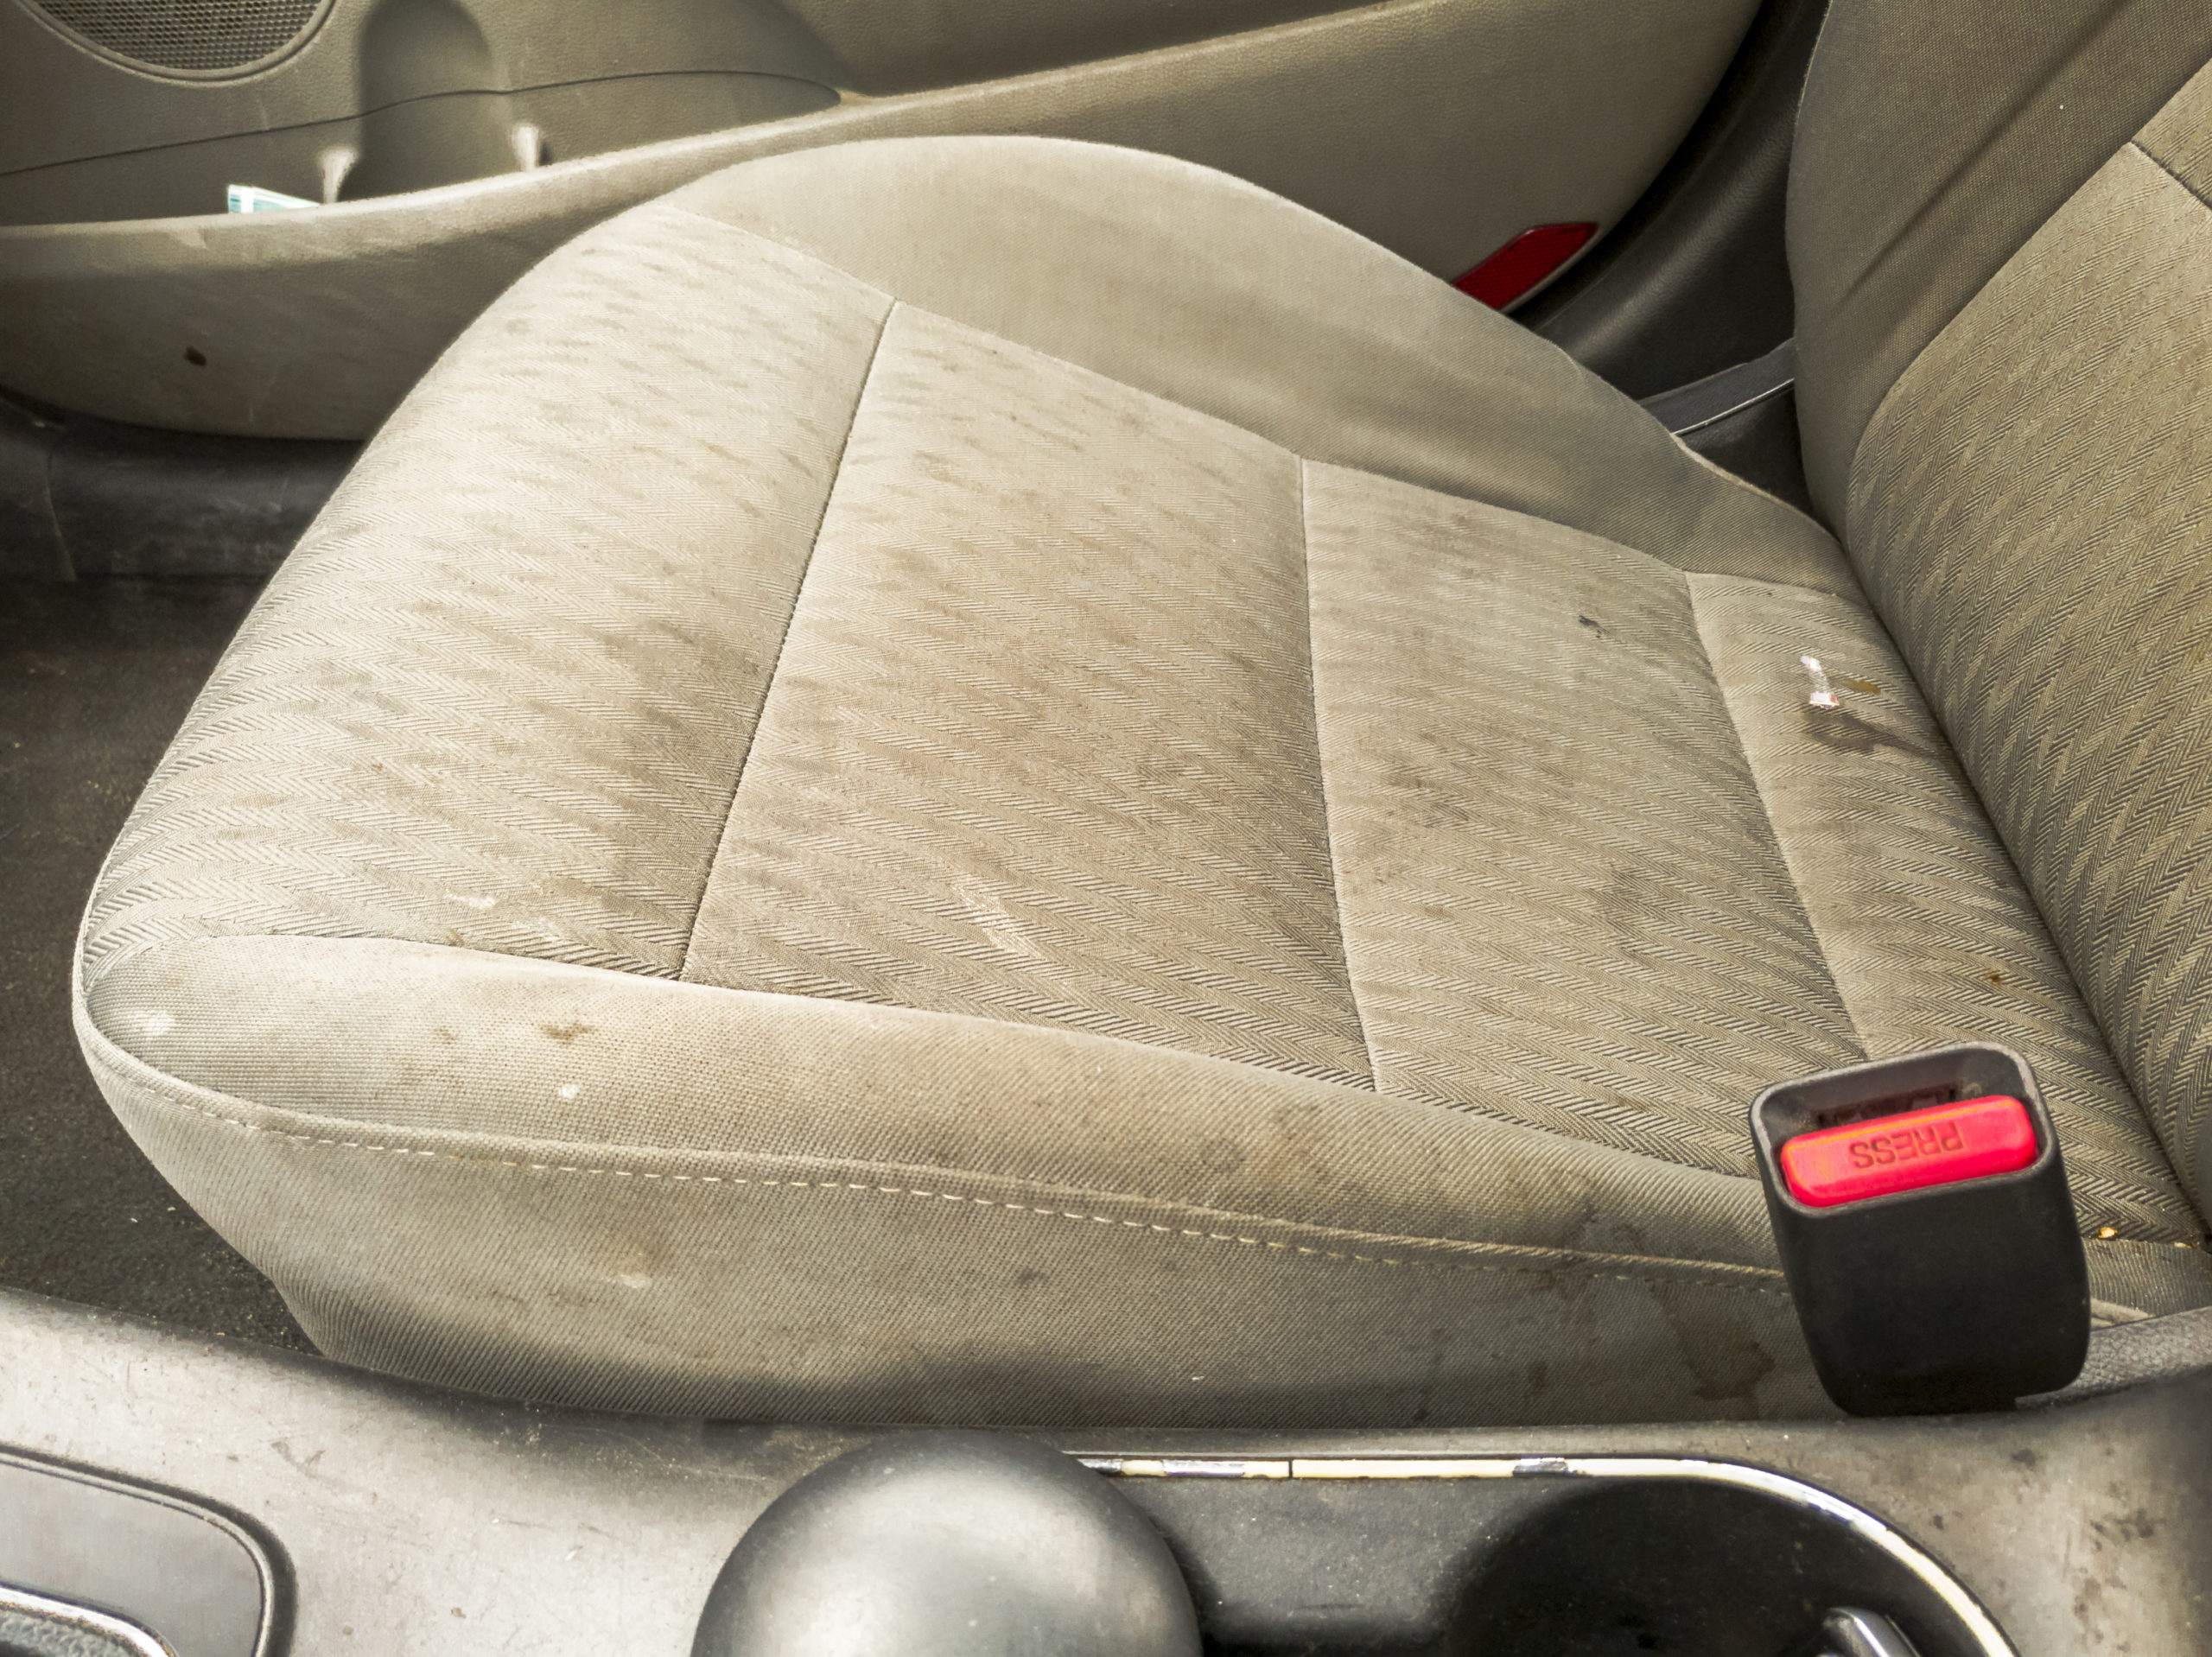 Stained car seats